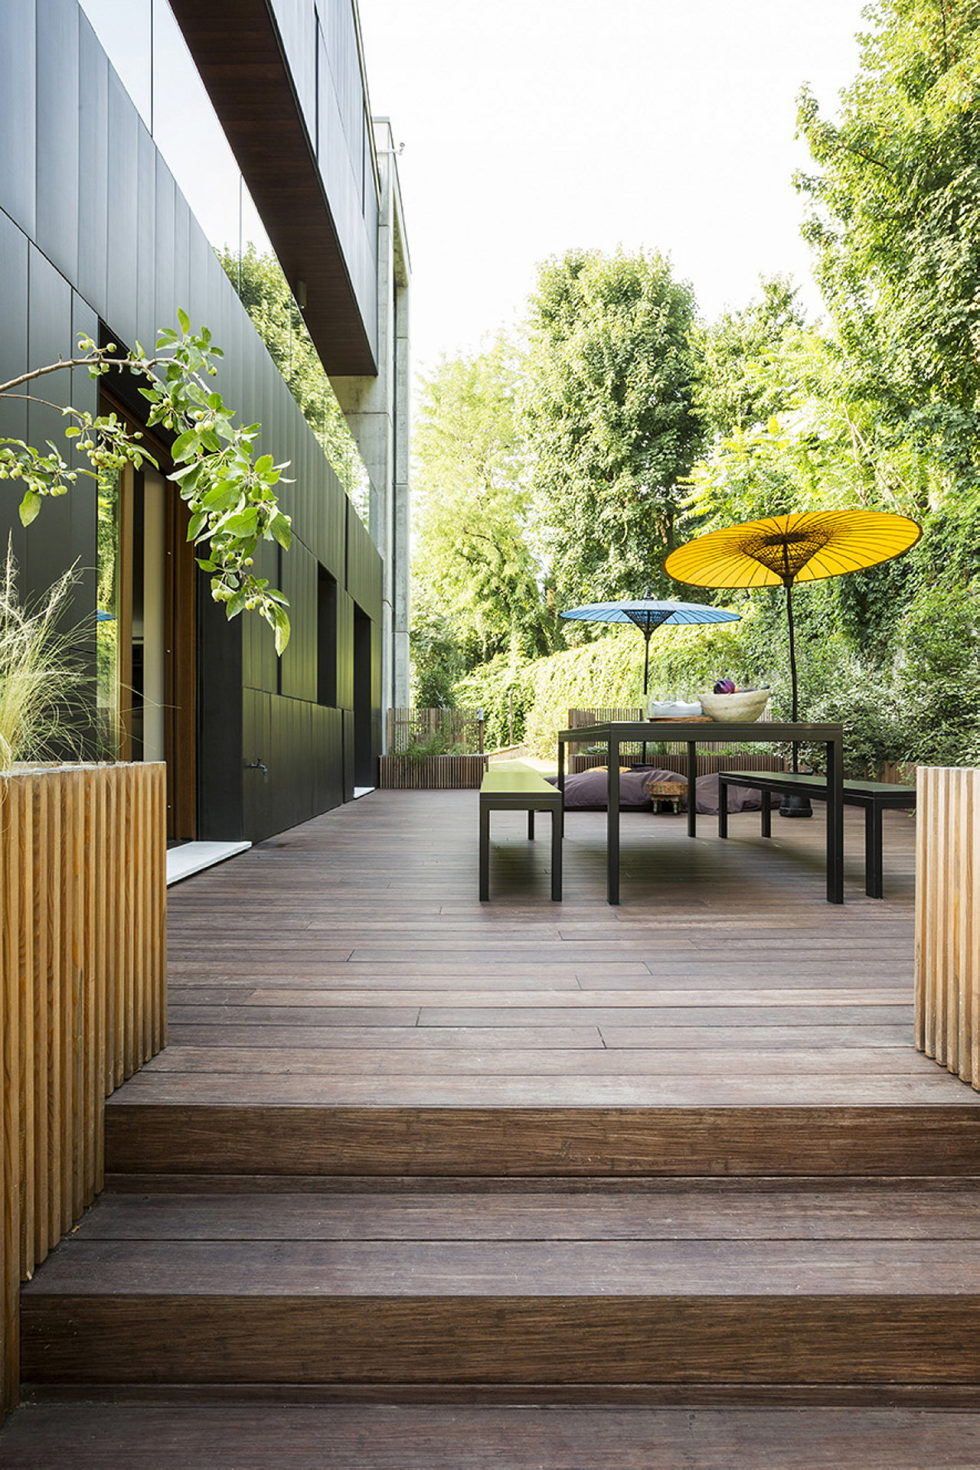 Apartments With Fabulous Garden In Turin From MG2 ARCHITETTURE 15